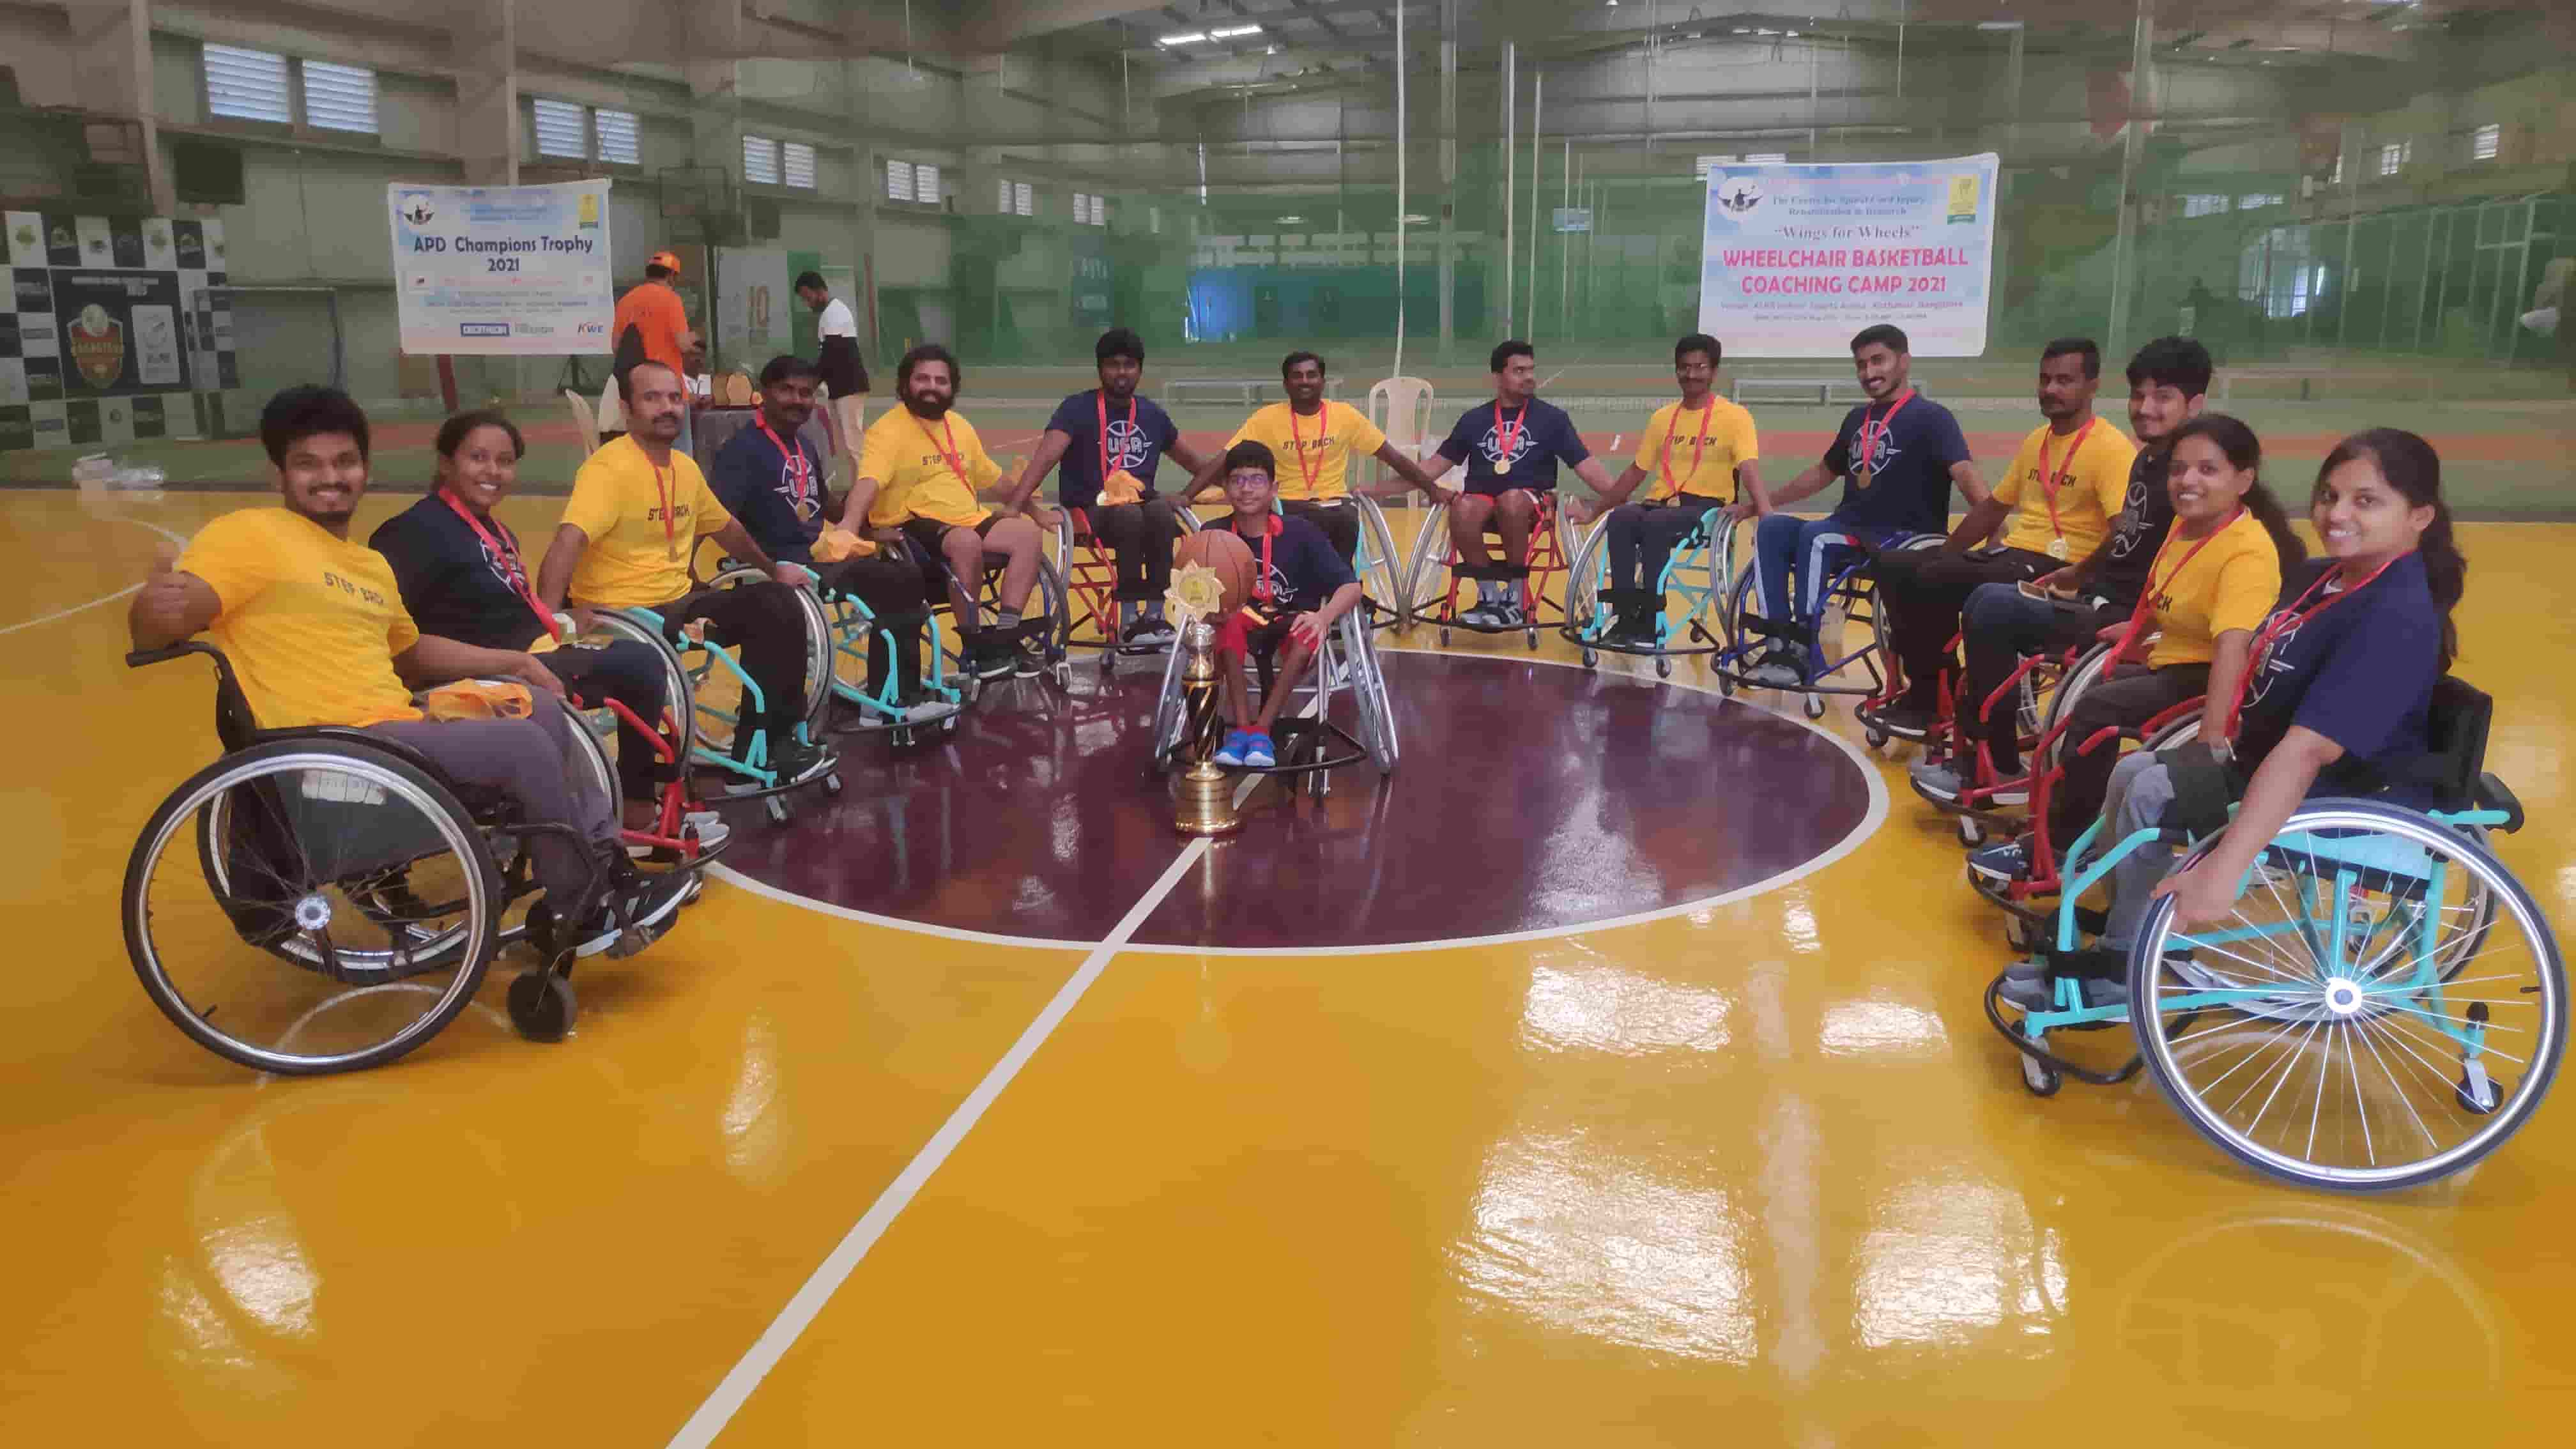 Wheelchair Basketball: An Initiative by the Association of People with Disability  (APD)